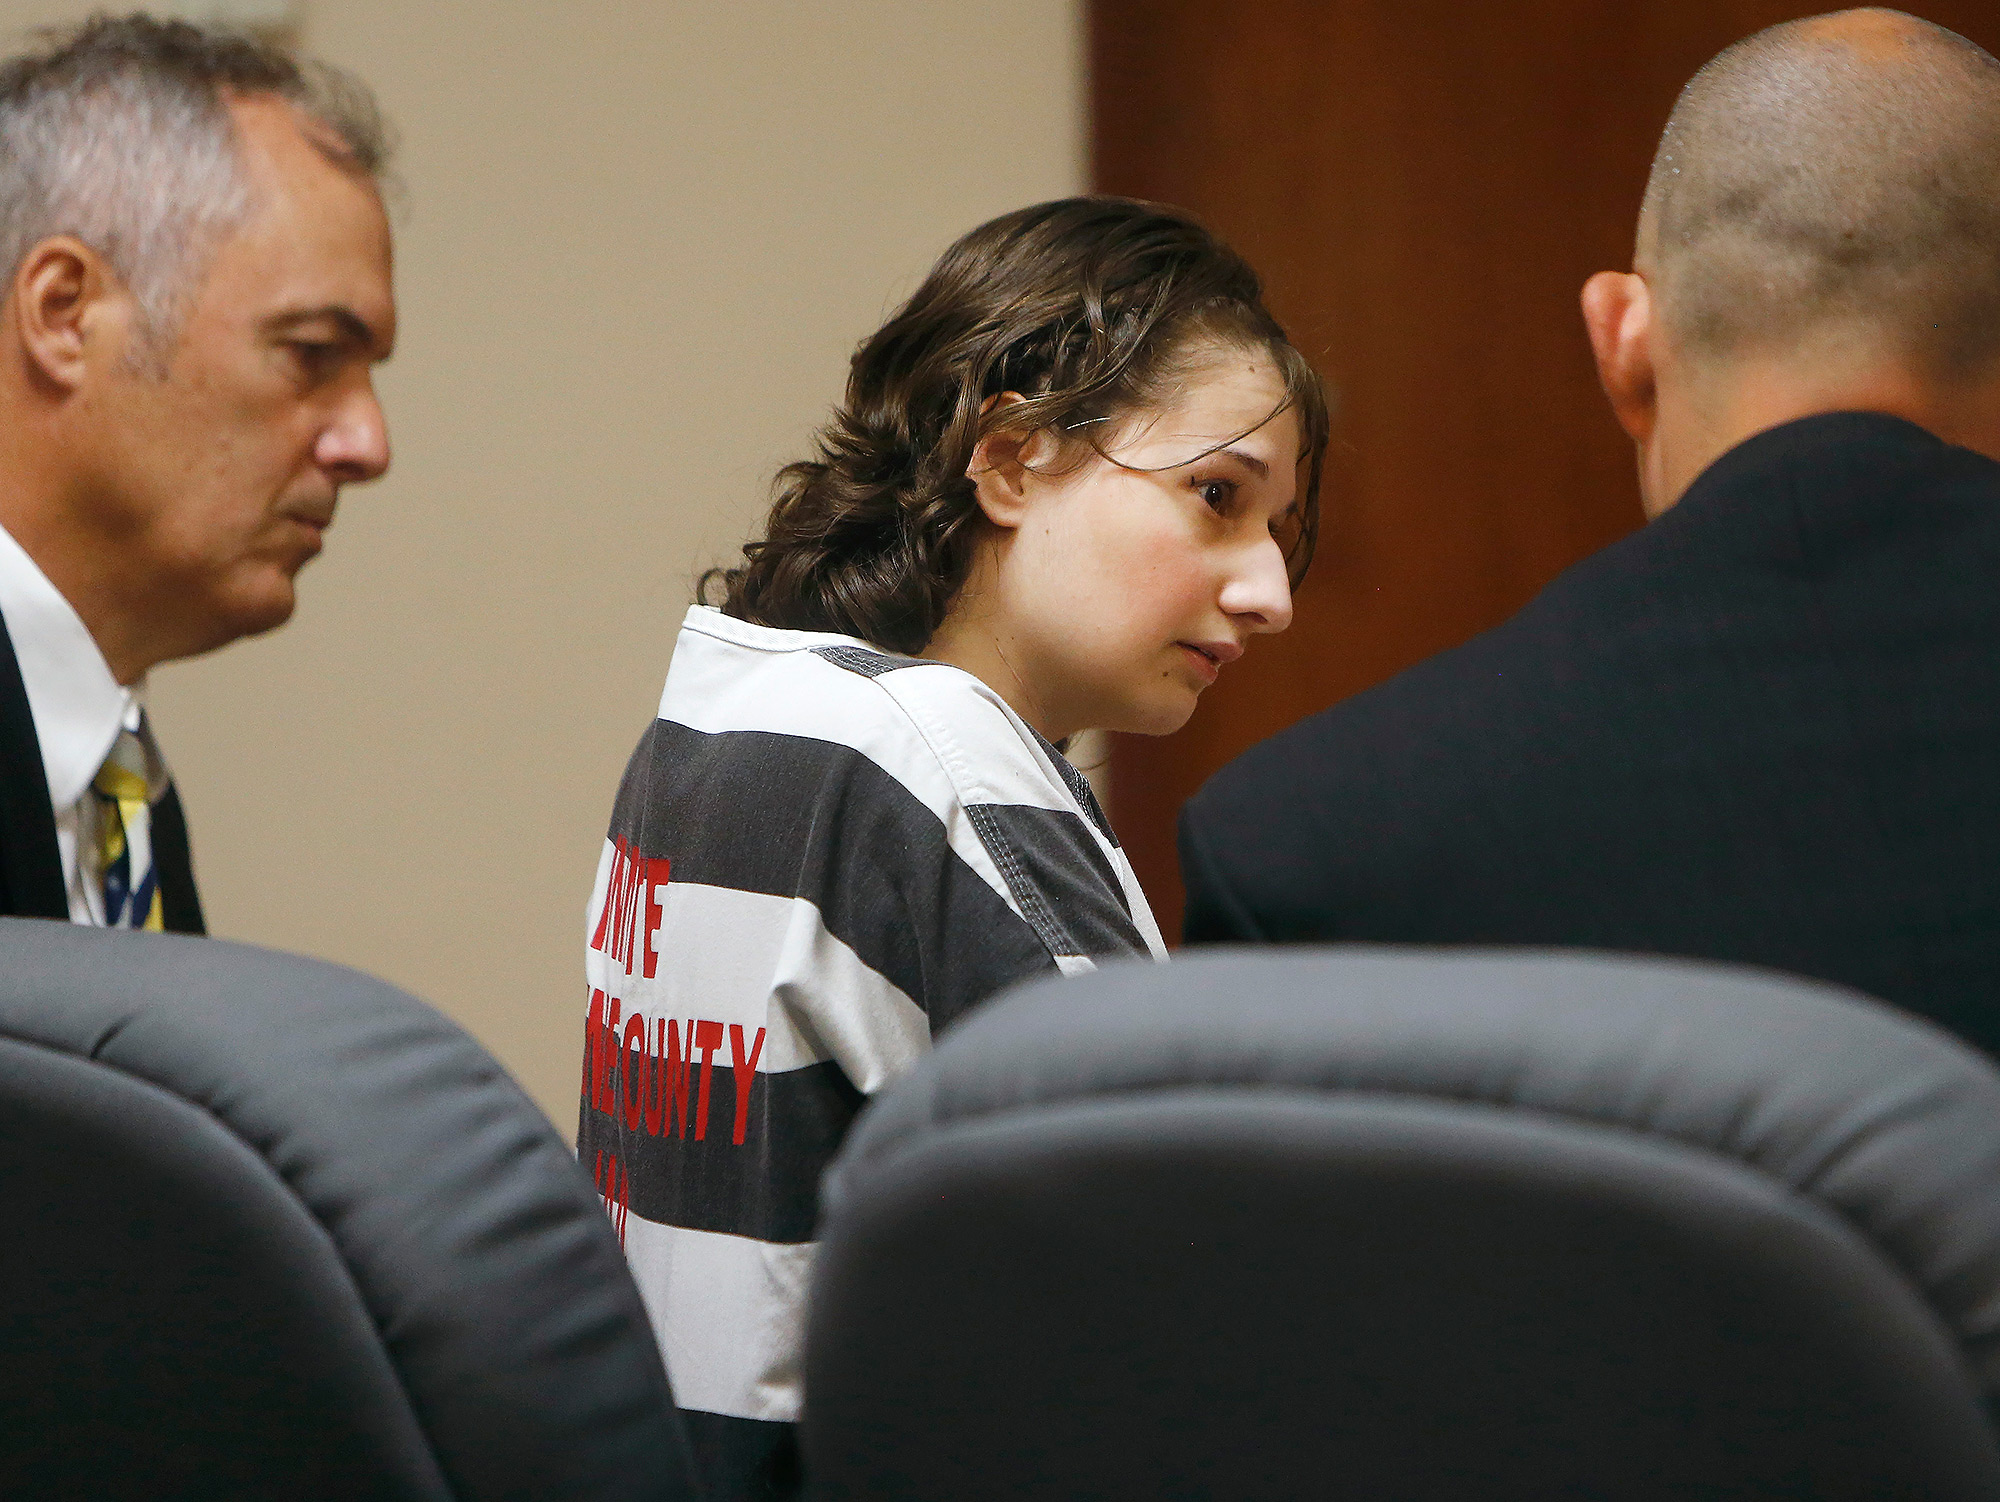 The Disturbing Case of Gypsy Rose Blanchard, Who Murdered Her Munchausen-by-Proxy Mom